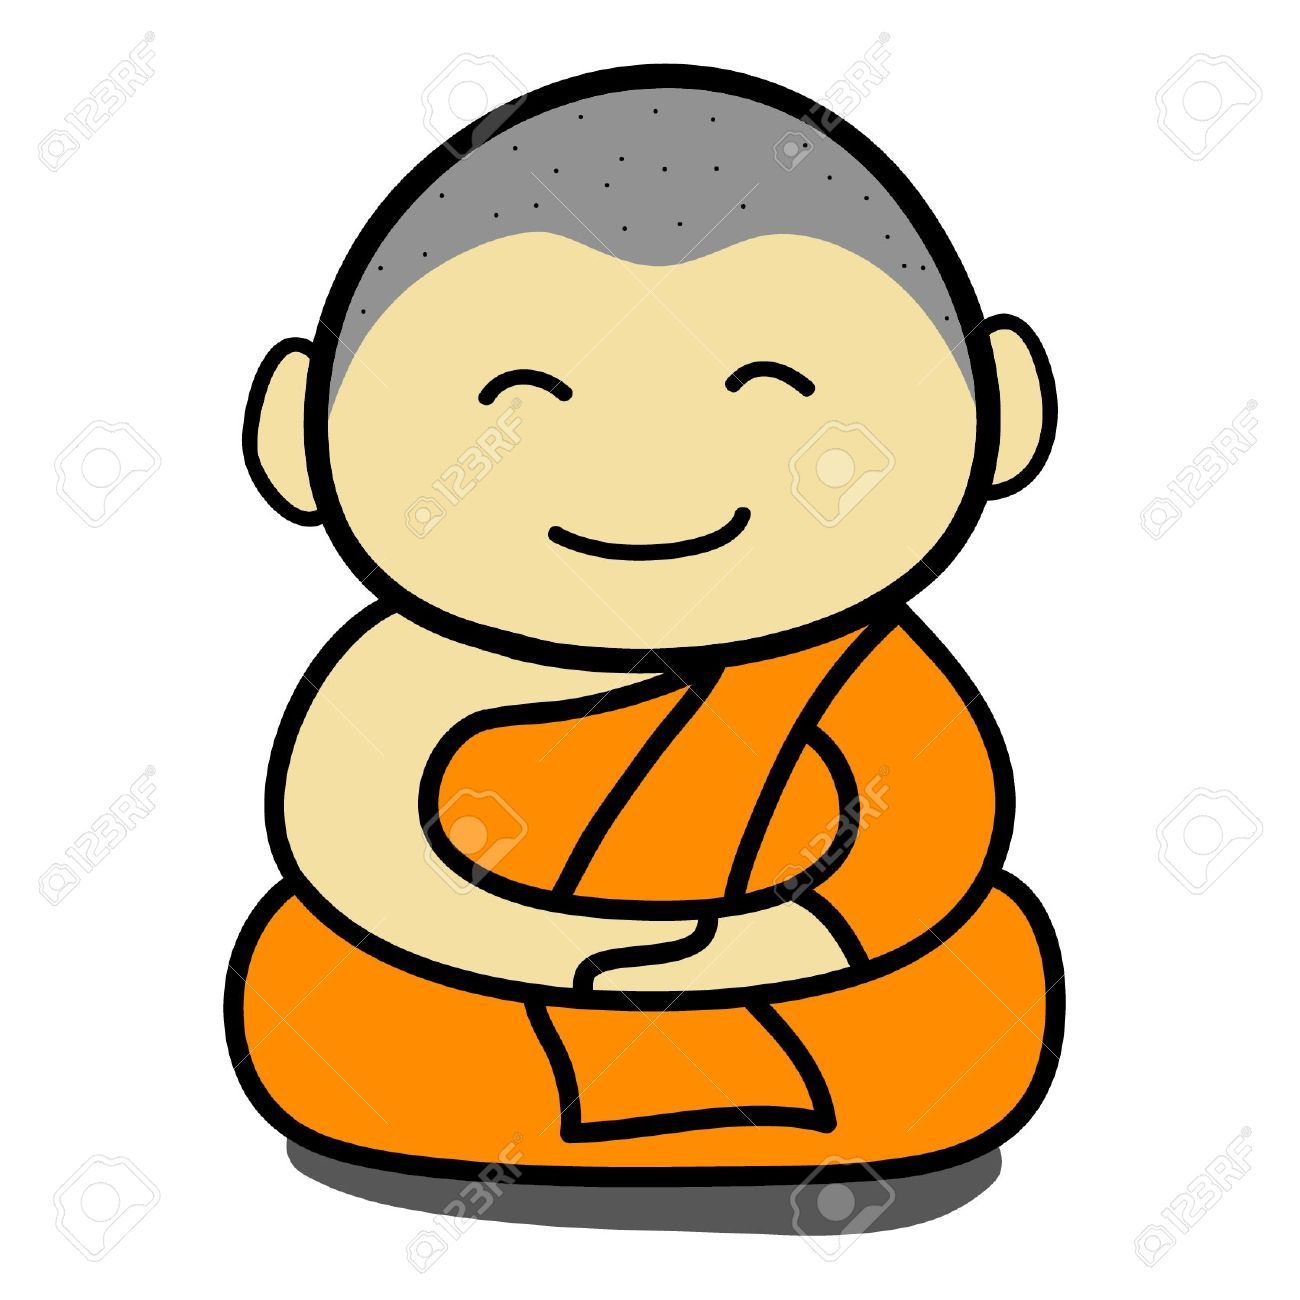 1300x1300 Buddha Cartoon Drawing How To Draw Buddha Easy, Stepstep, Faces